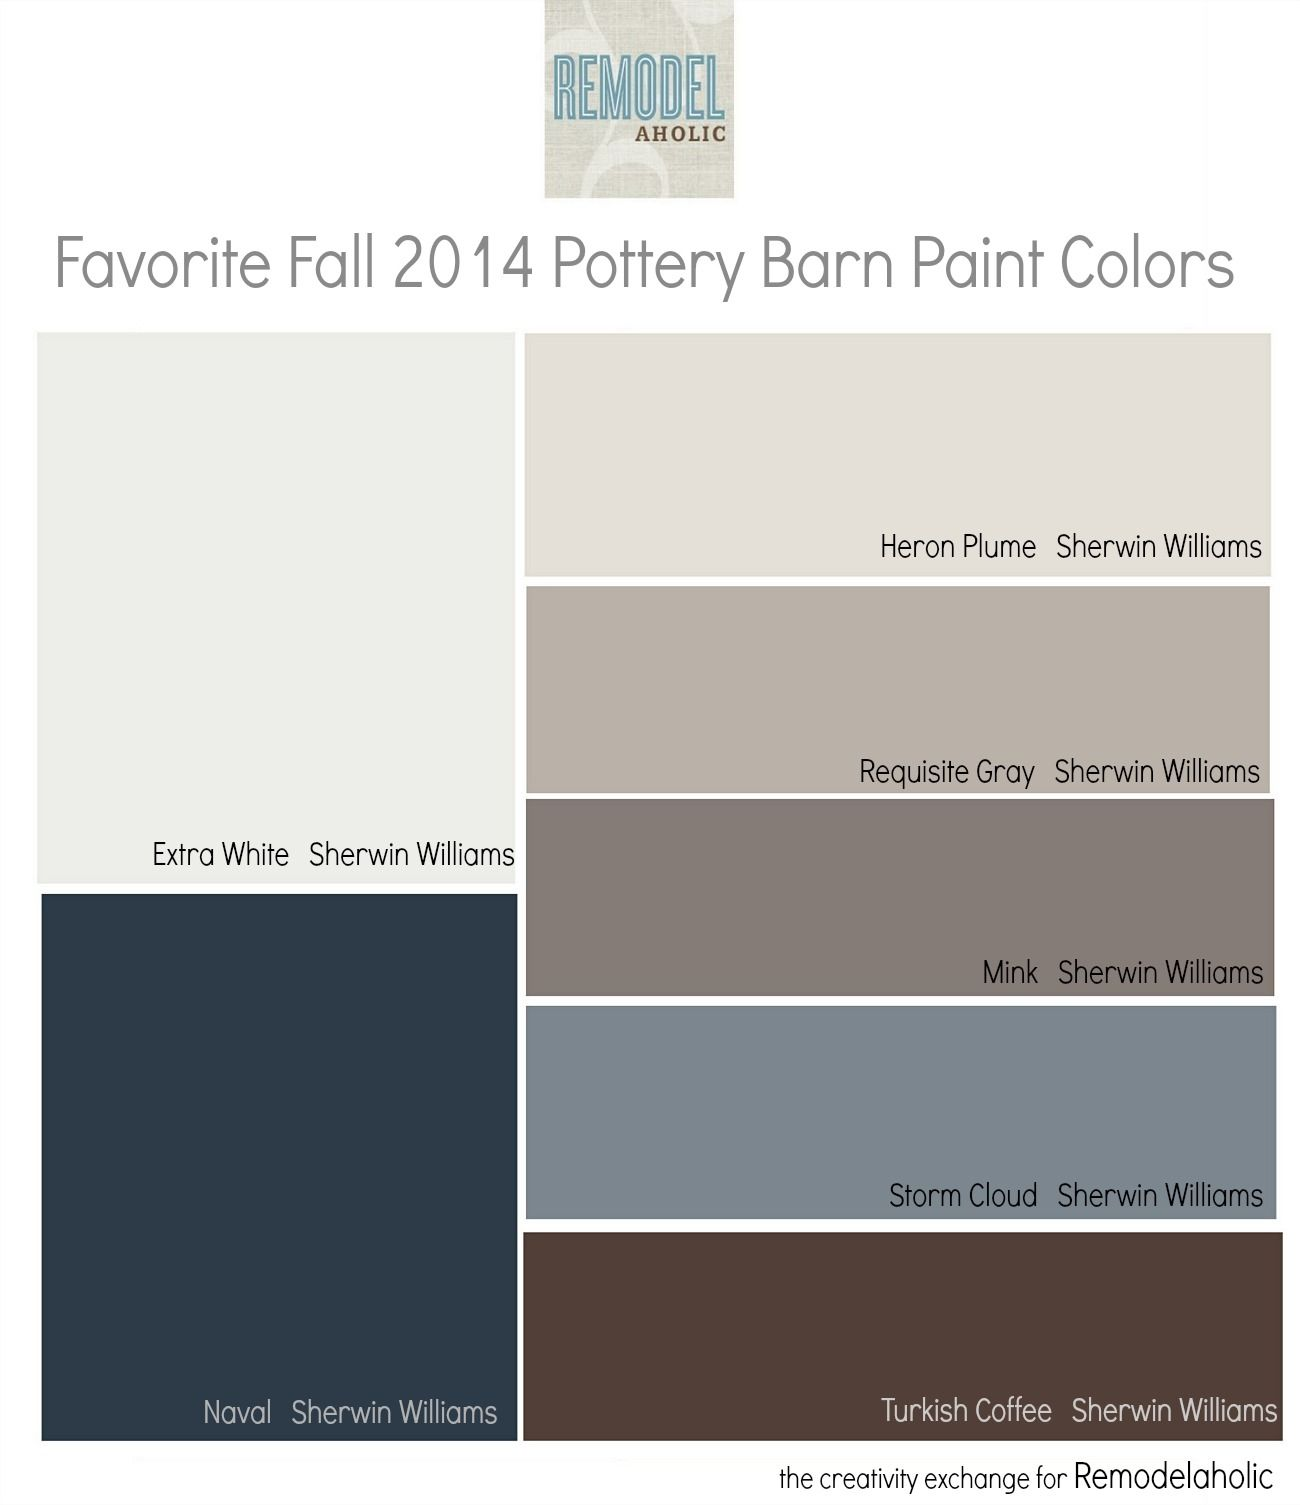 Sherwin williams paint colors sherwin williams 6249 storm cloud - This Season S Pottery Barn Paint Colors From Sherwin Williams Are Lovely Here Are Our Favorites